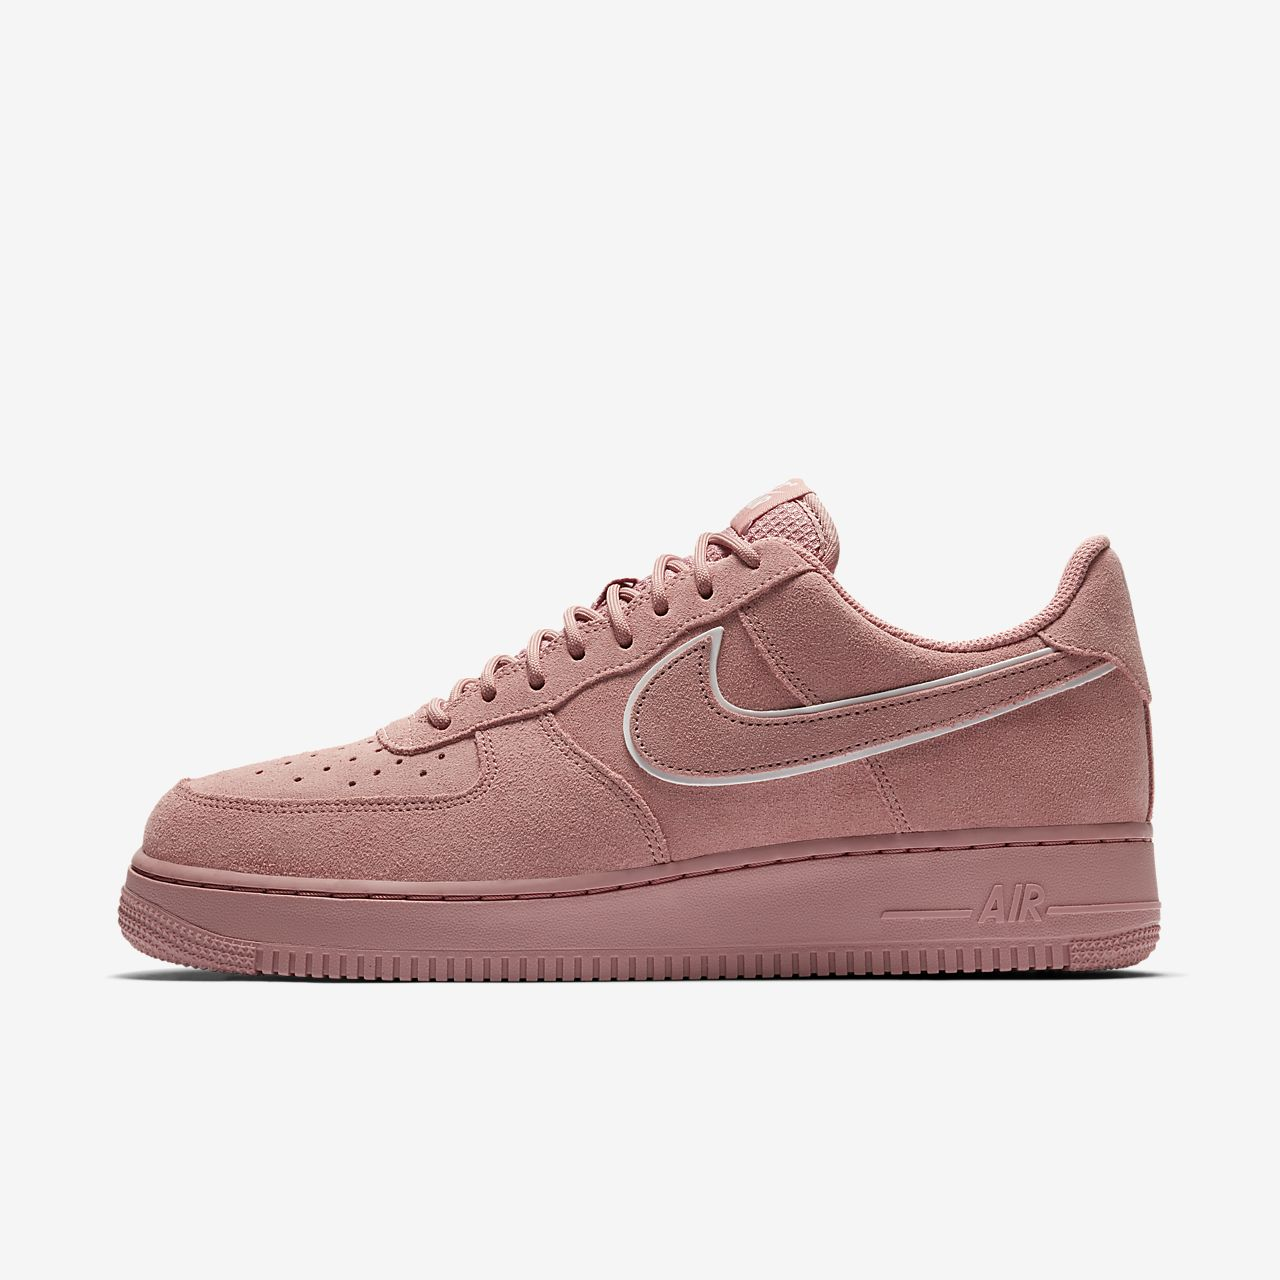 quality design 82170 3aae4 ... sale nike air force 1 07 lv8 suede mens shoe 66d8a ee57b